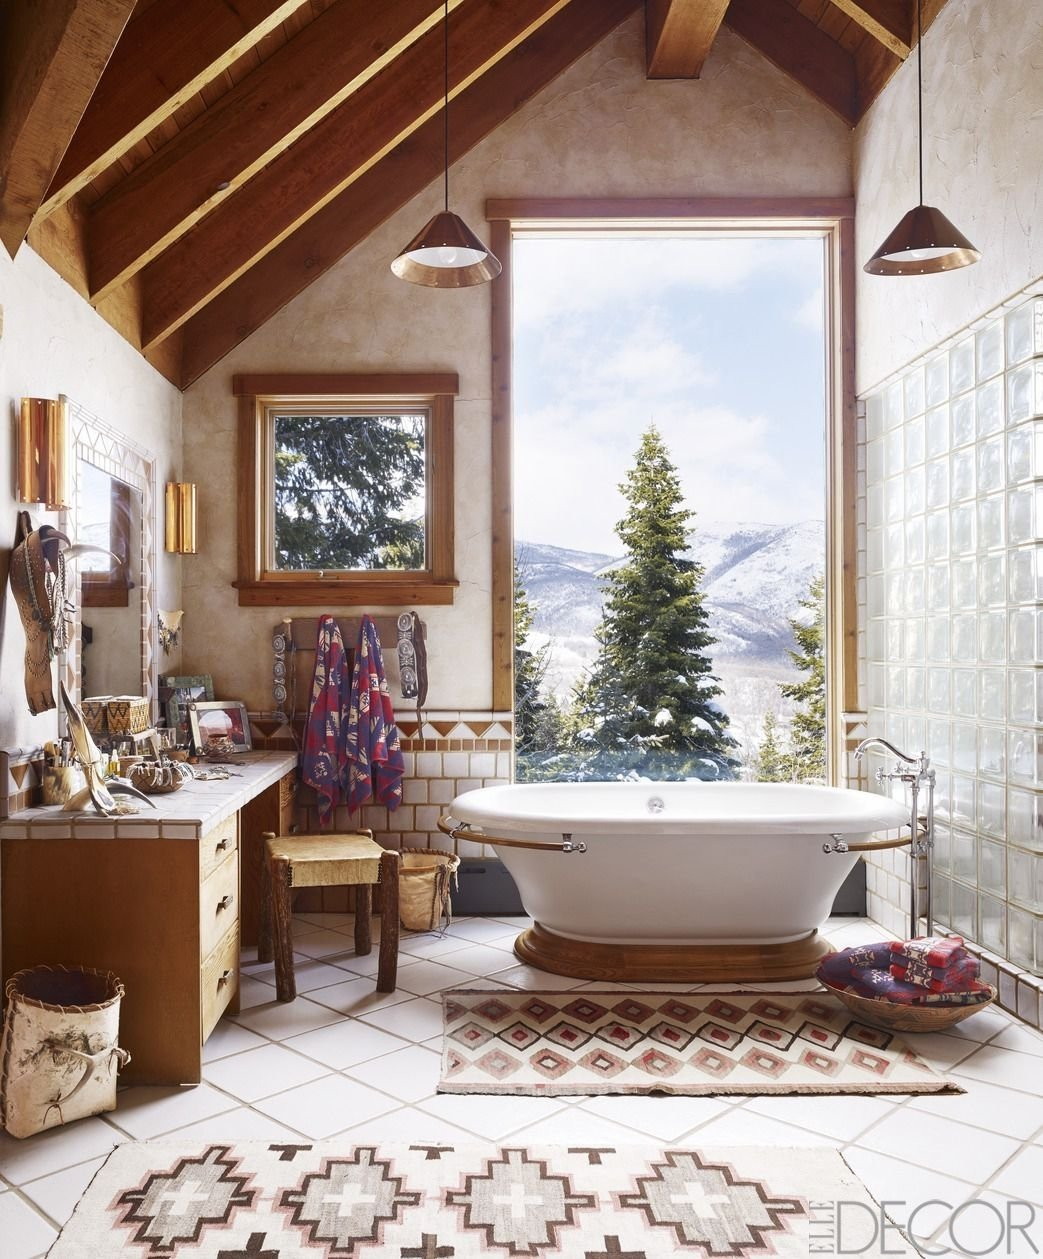 10 Most Recommended Master Bathroom Ideas Photo Gallery 100 beautiful bathrooms ideas pictures bathroom design photo gallery 2020